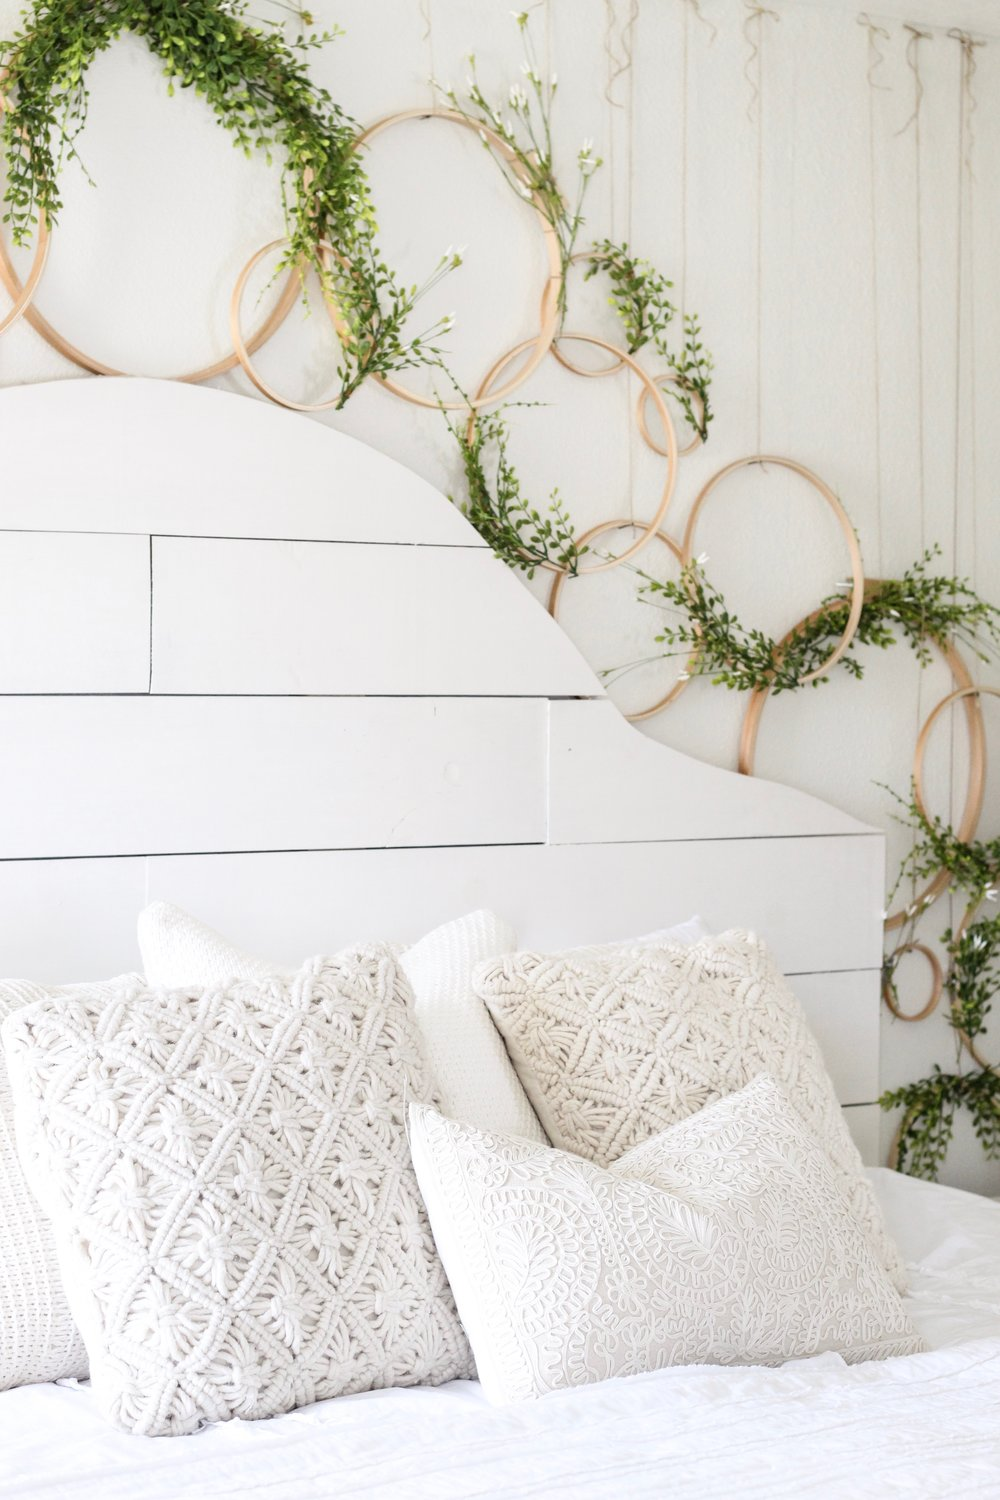 Cotton Stem Blog wreath wall spring decor shiplap headboard farmhouse bedroom.jpg